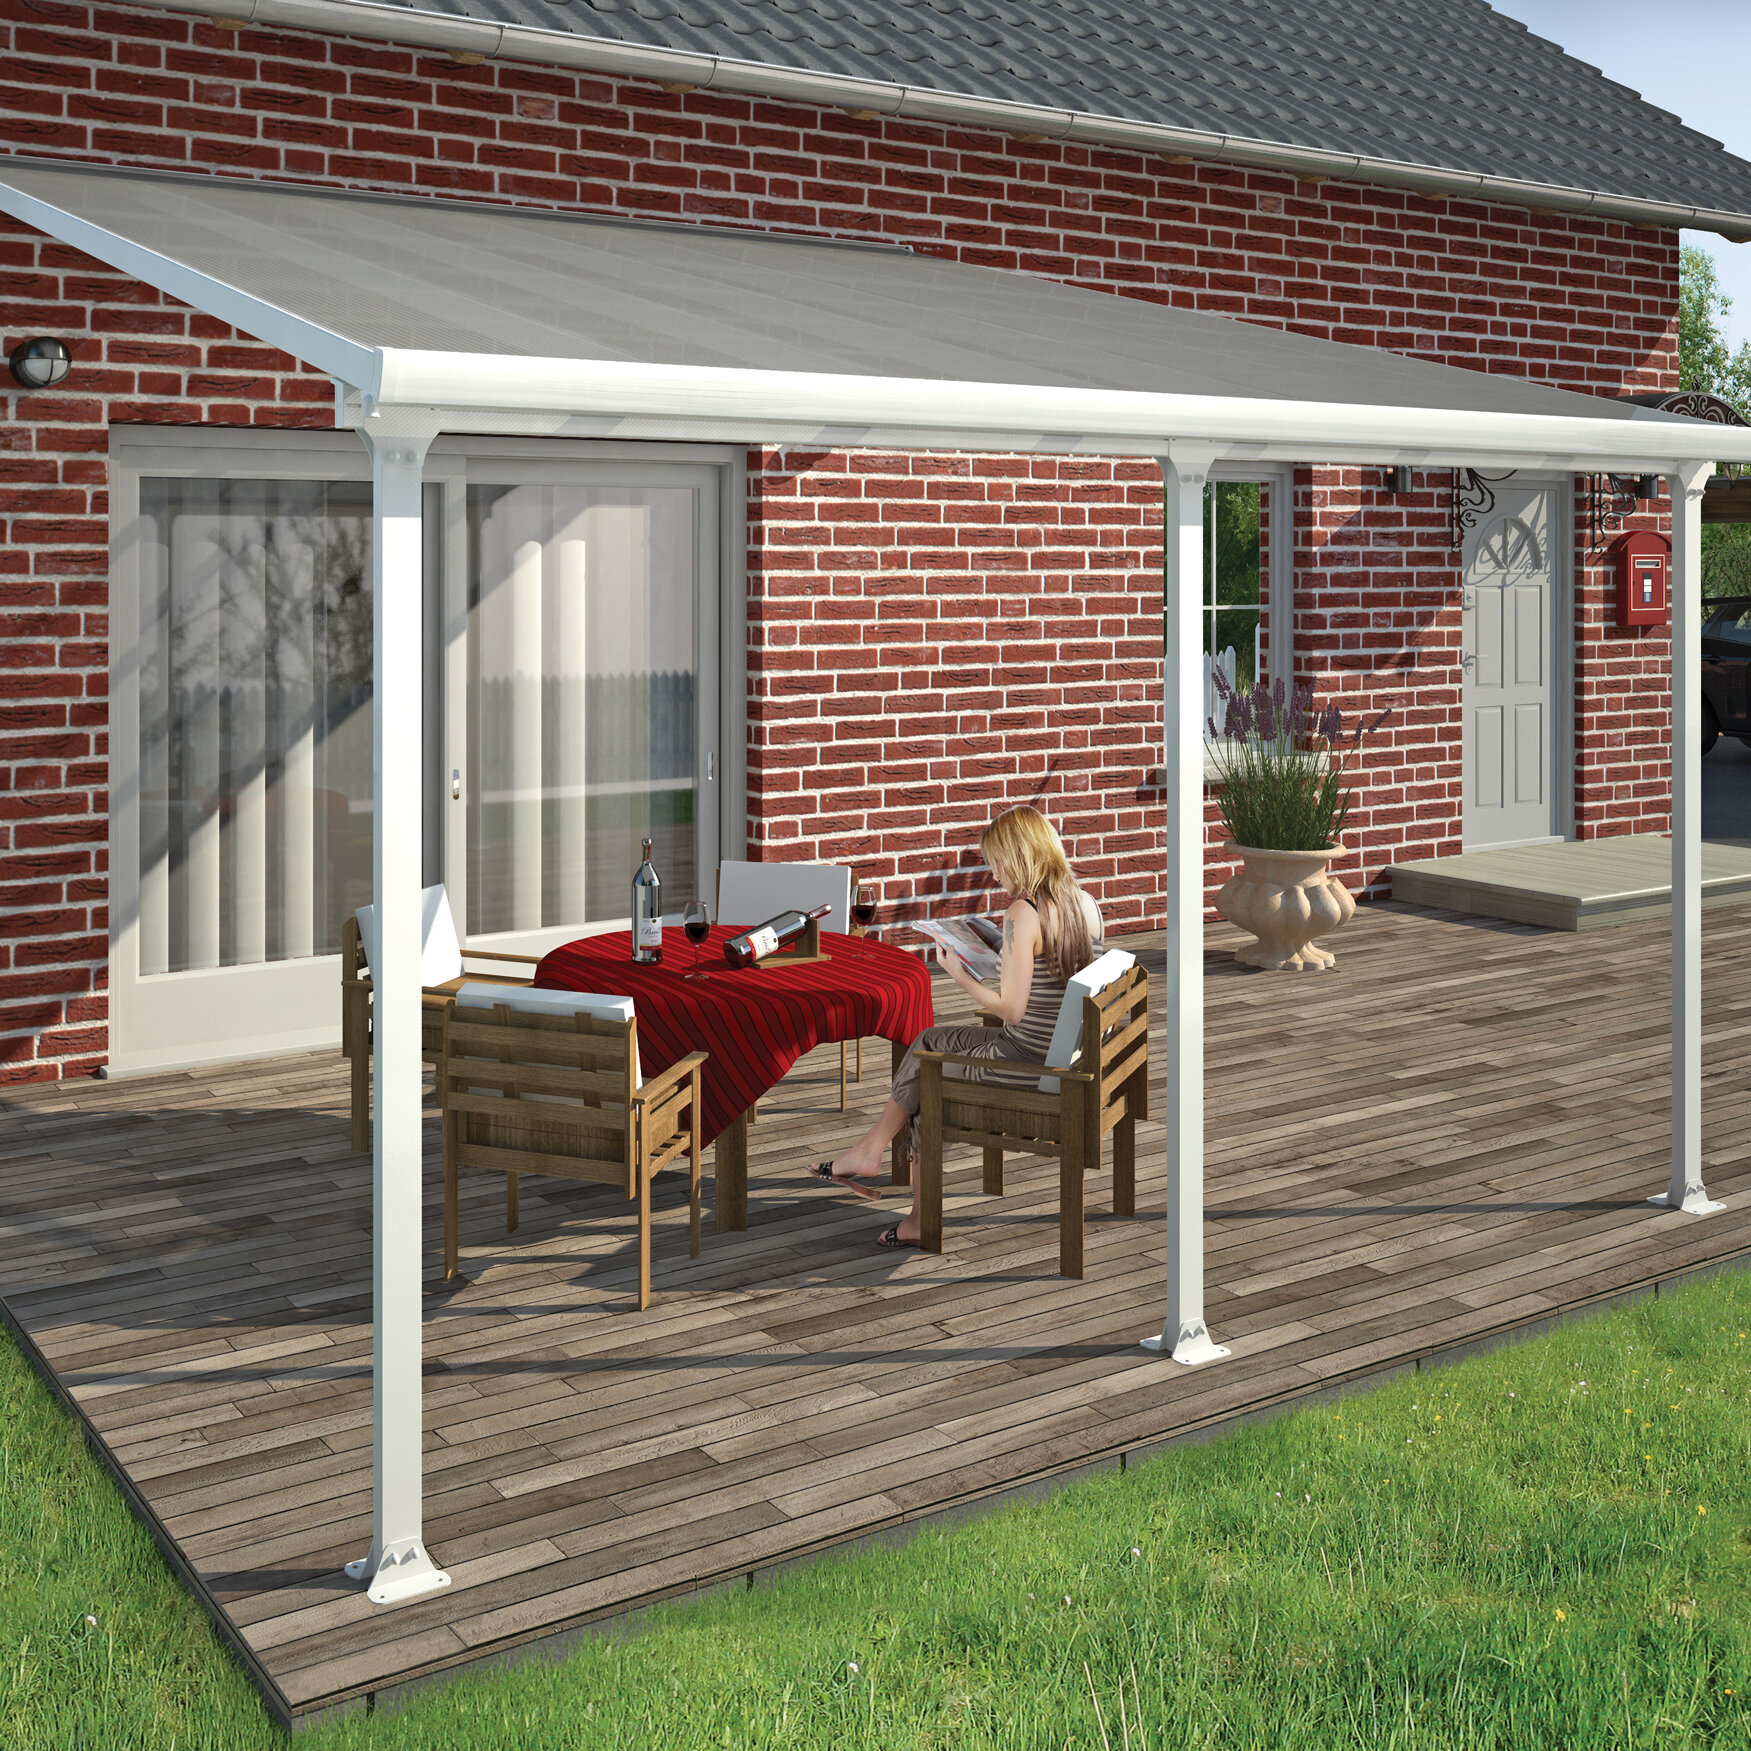 D Patio Awning | Wayfair